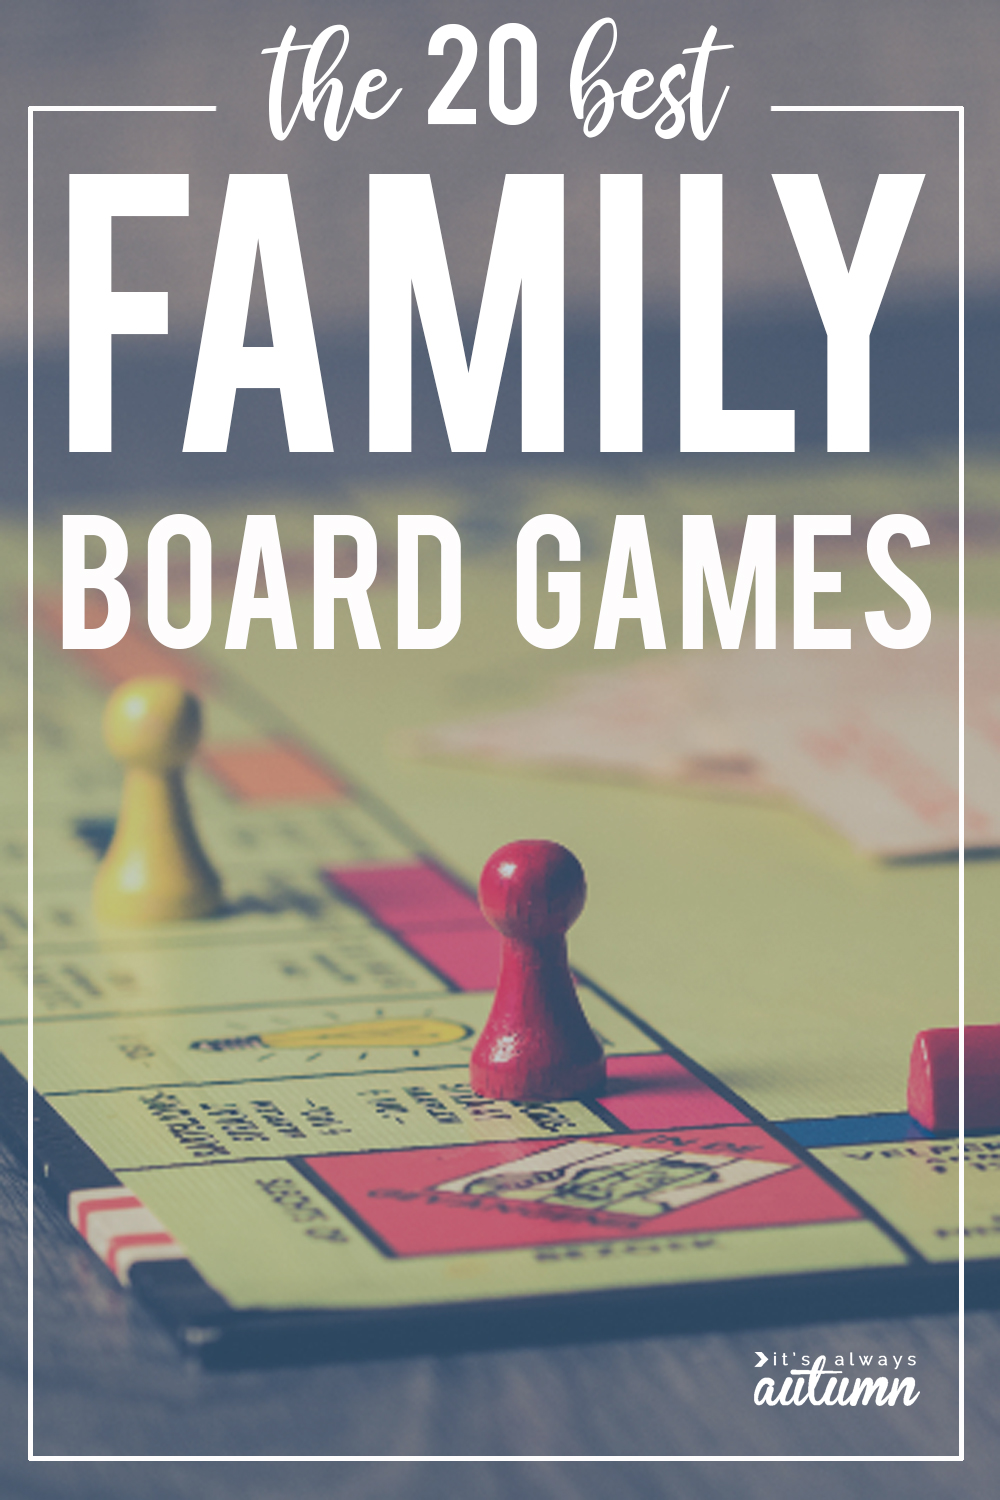 These family board games are so much fun! The 20 best family games that everyone will love.